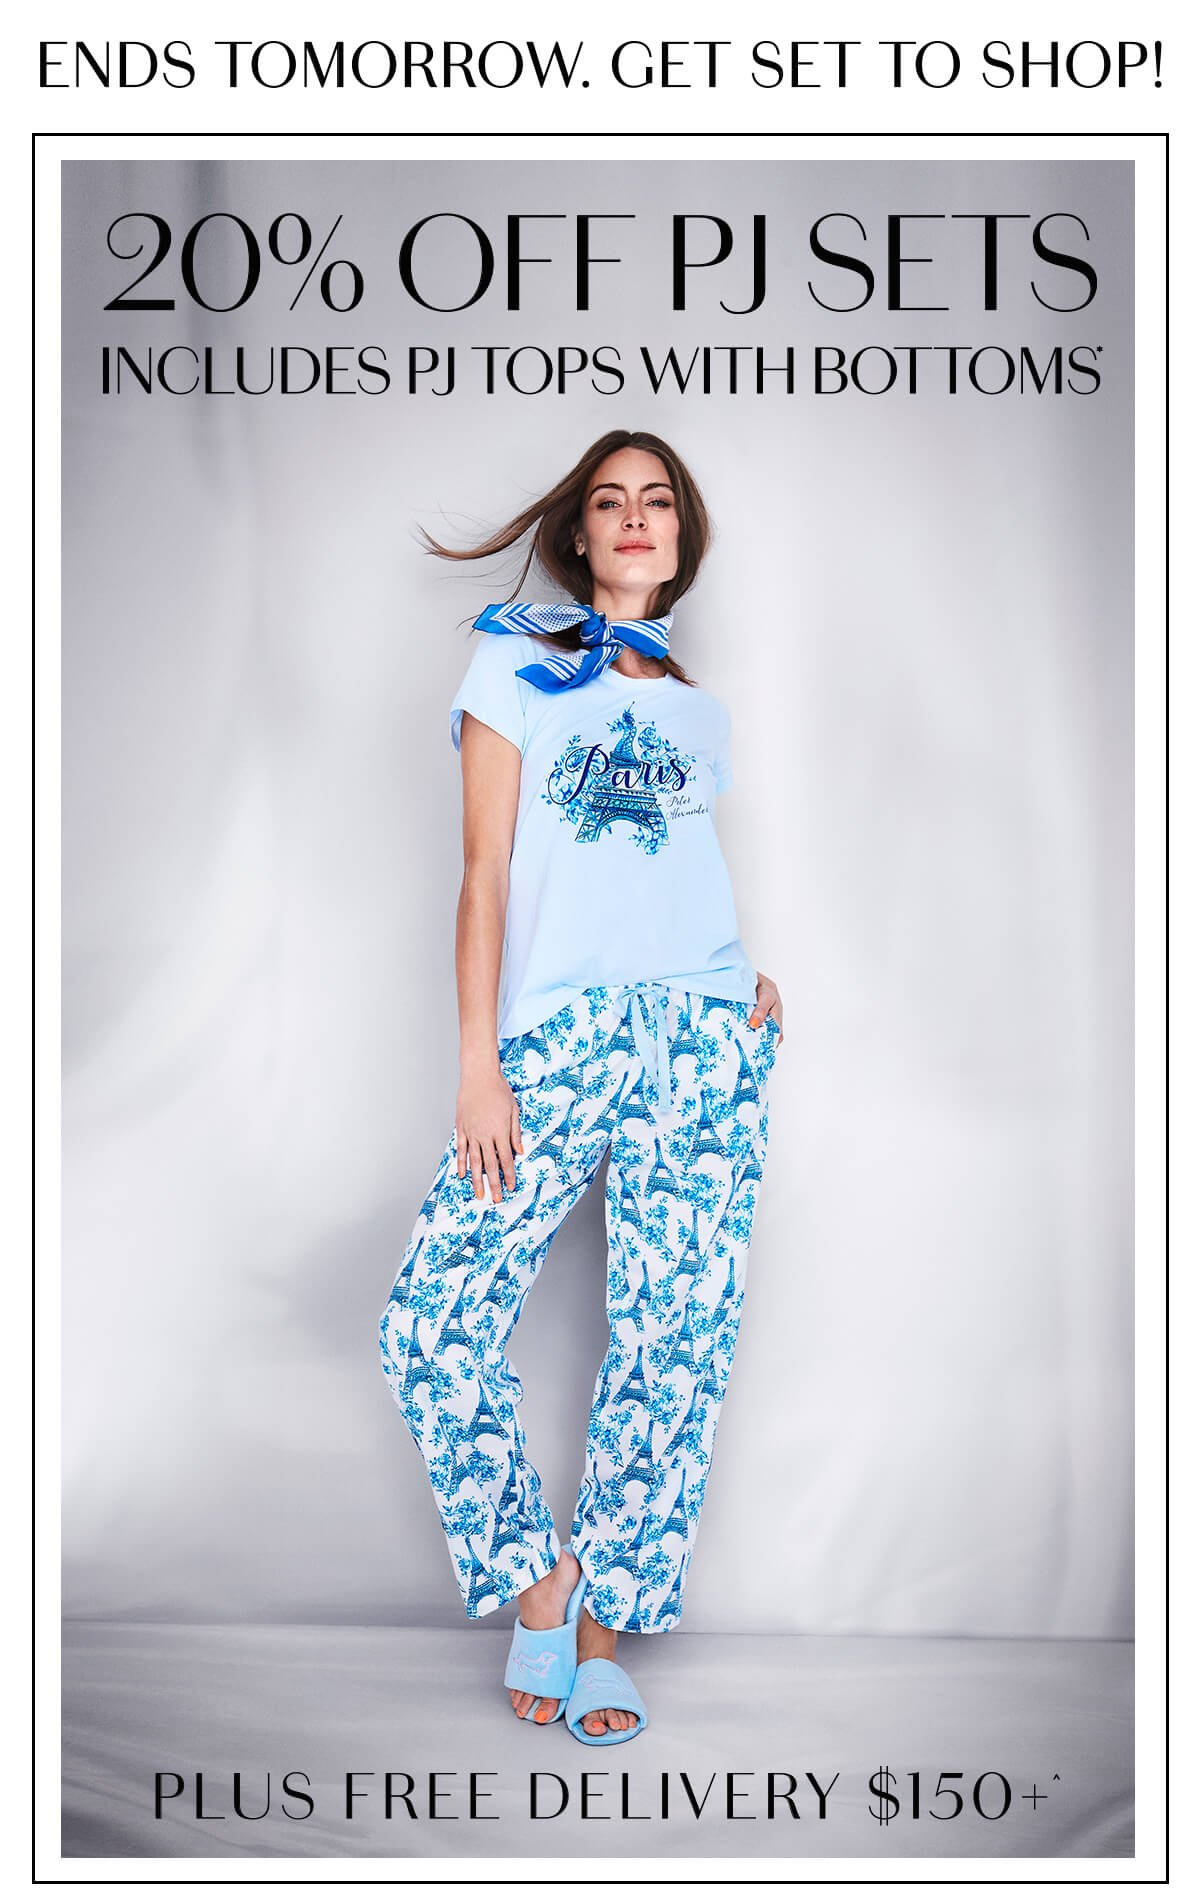 Ends Tomorrow. Get Set To Shop! 20% Off PJ Sets Includes Tops With Bottoms* Plus Free Delivery $150+^